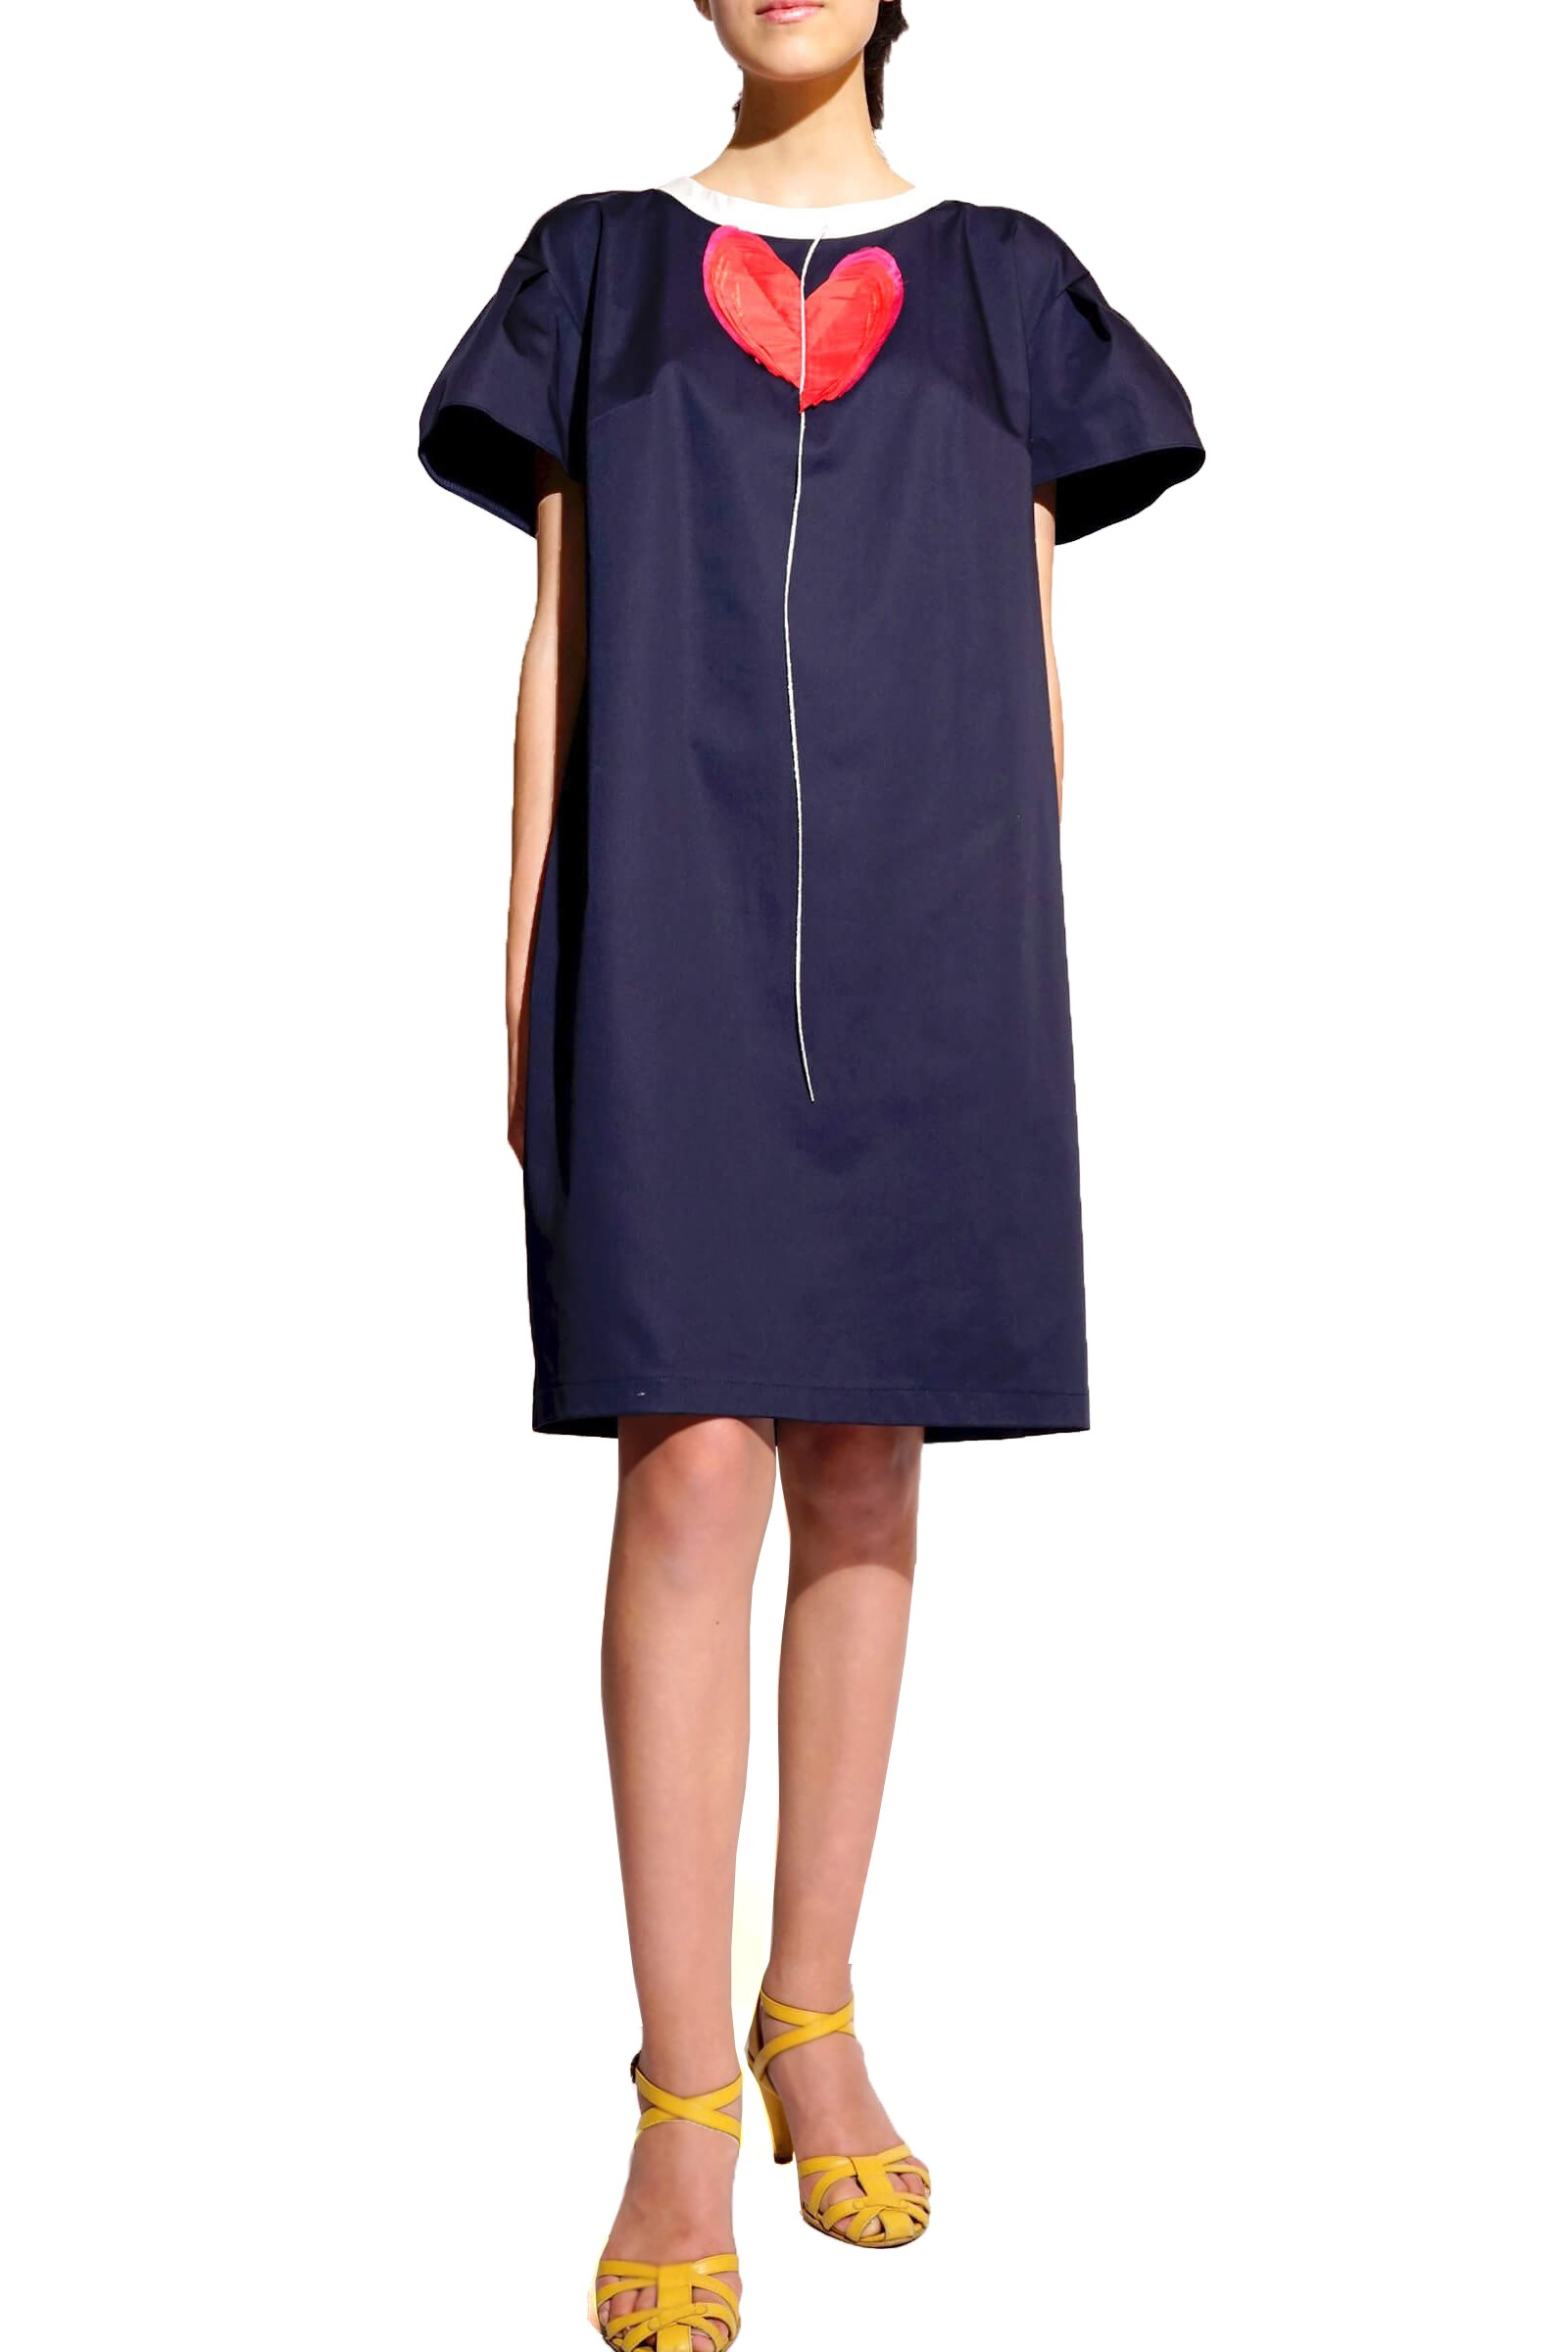 Navy blue dress with heart